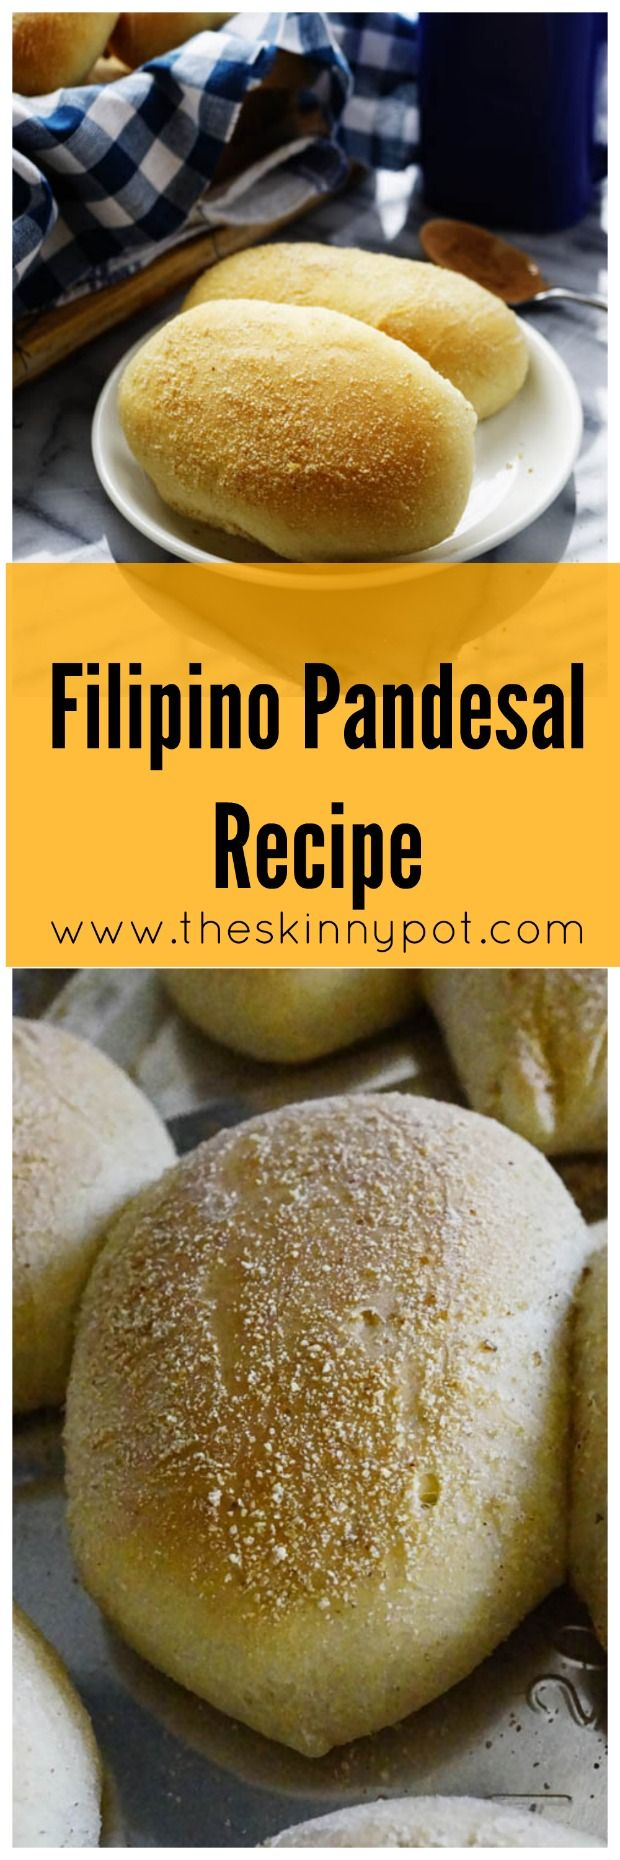 Filipino Pandesal Recipe that Actually Tastes Like Pandesal